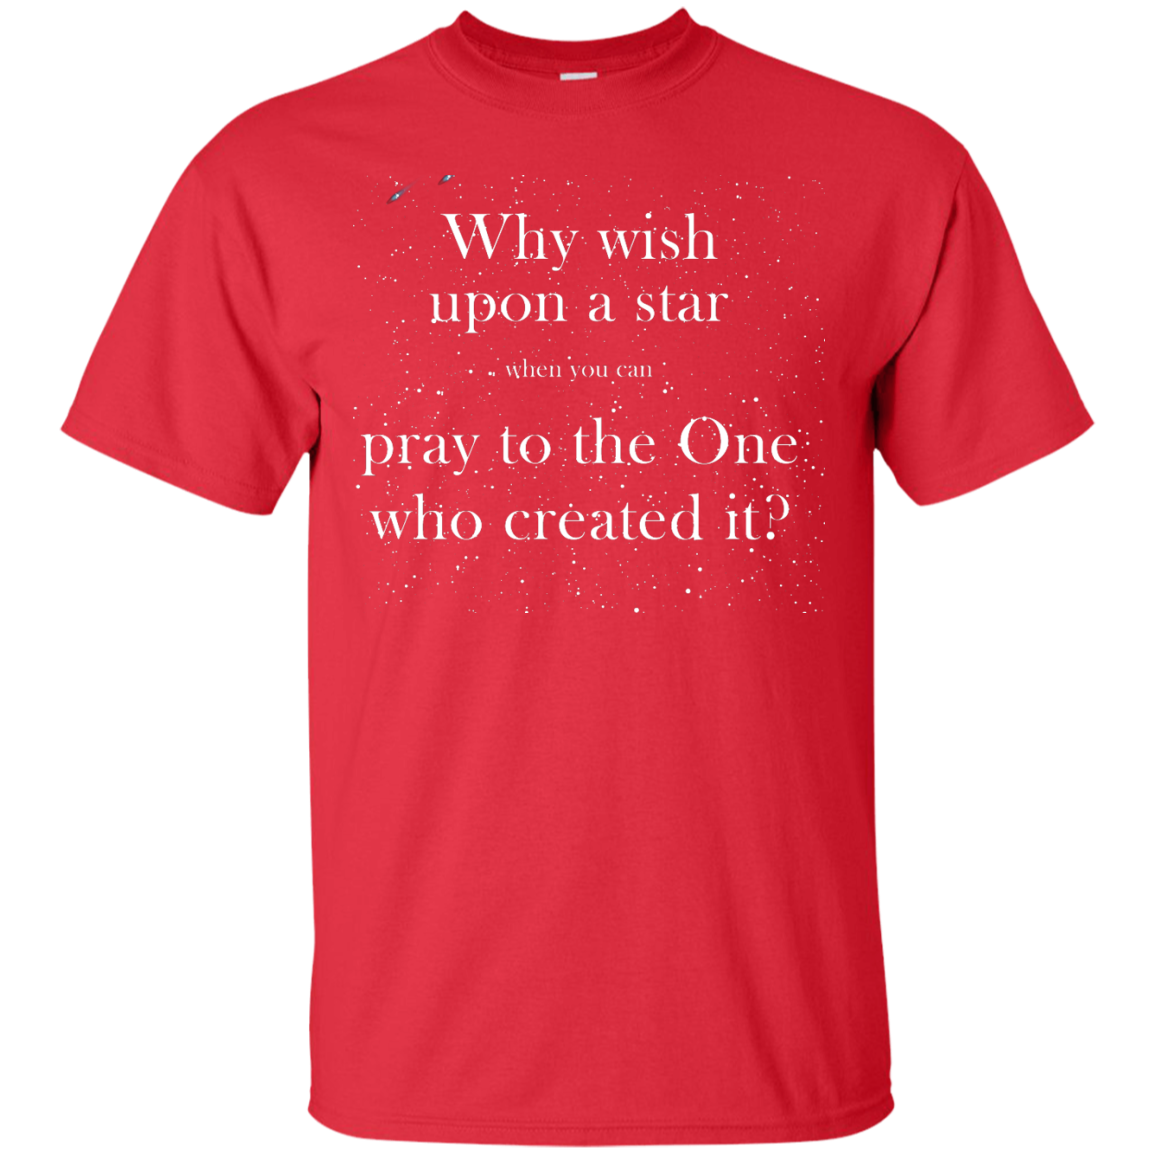 image 346px Why wish upon a star pray to the One who created it t shirts, hoodies